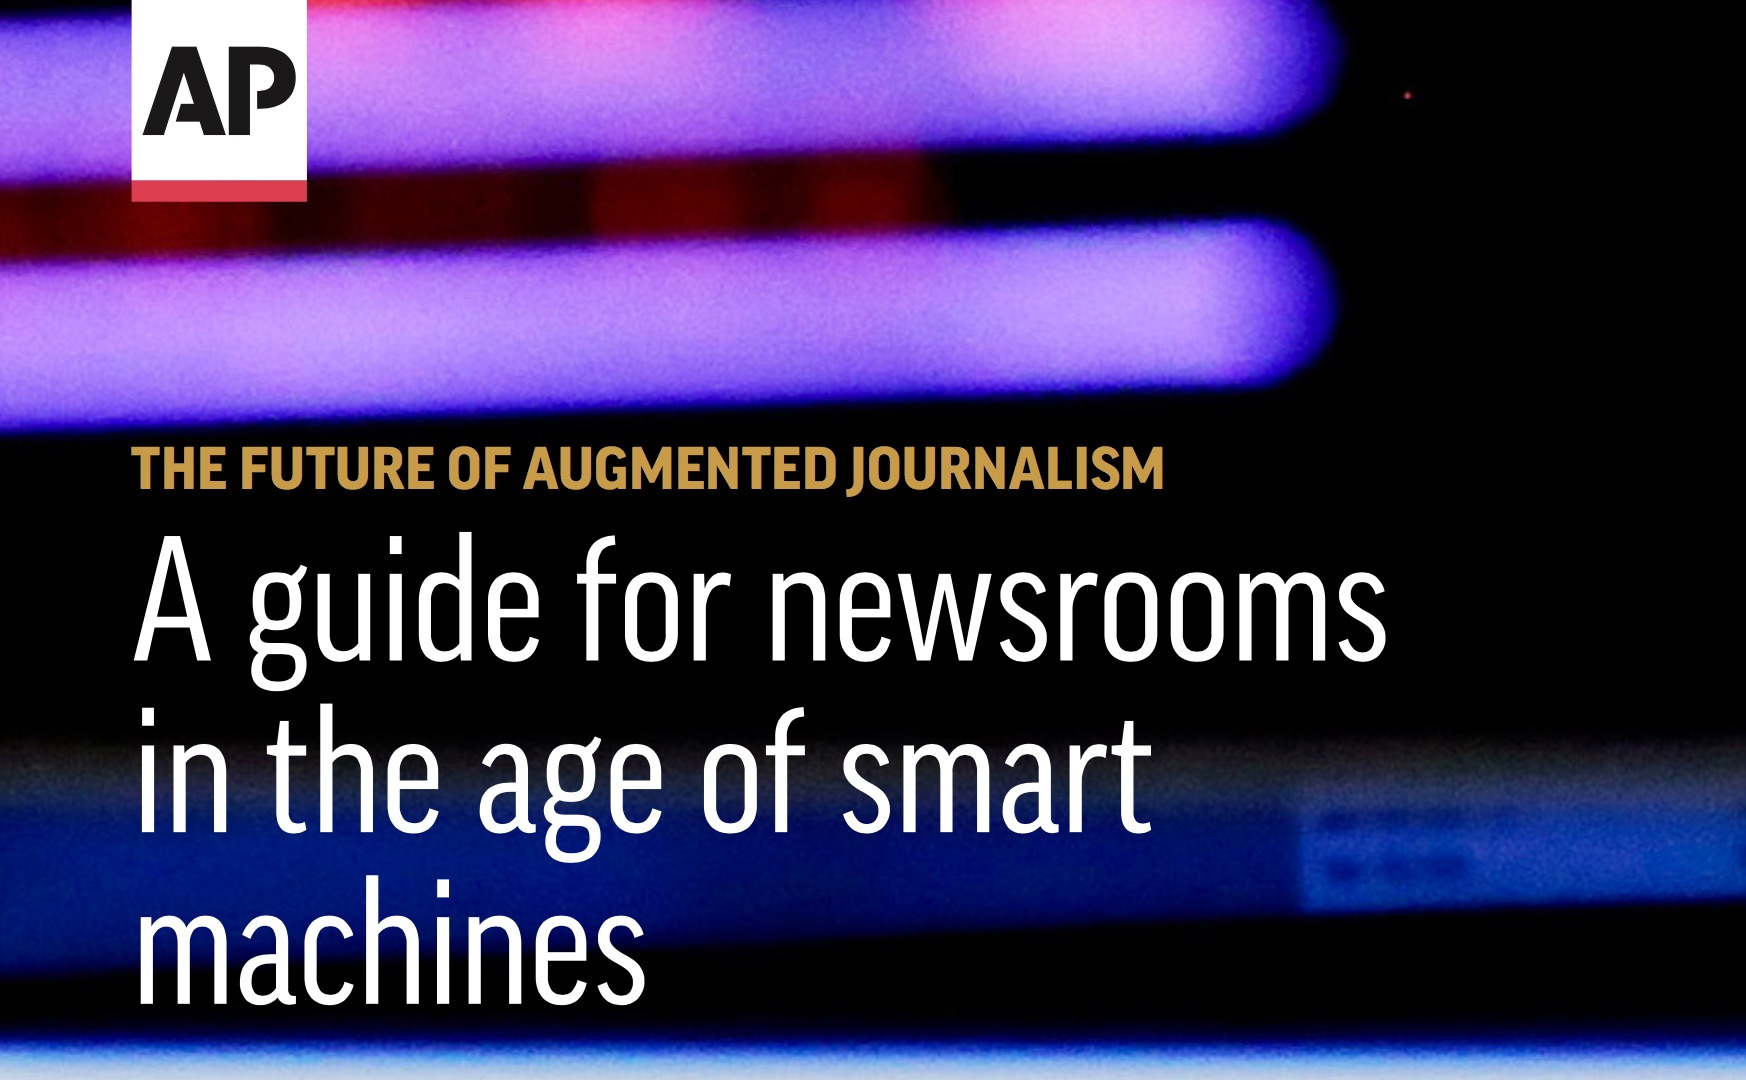 AP rapport: The future of augmented journalism: A guide for newsrooms in the age of smart machines